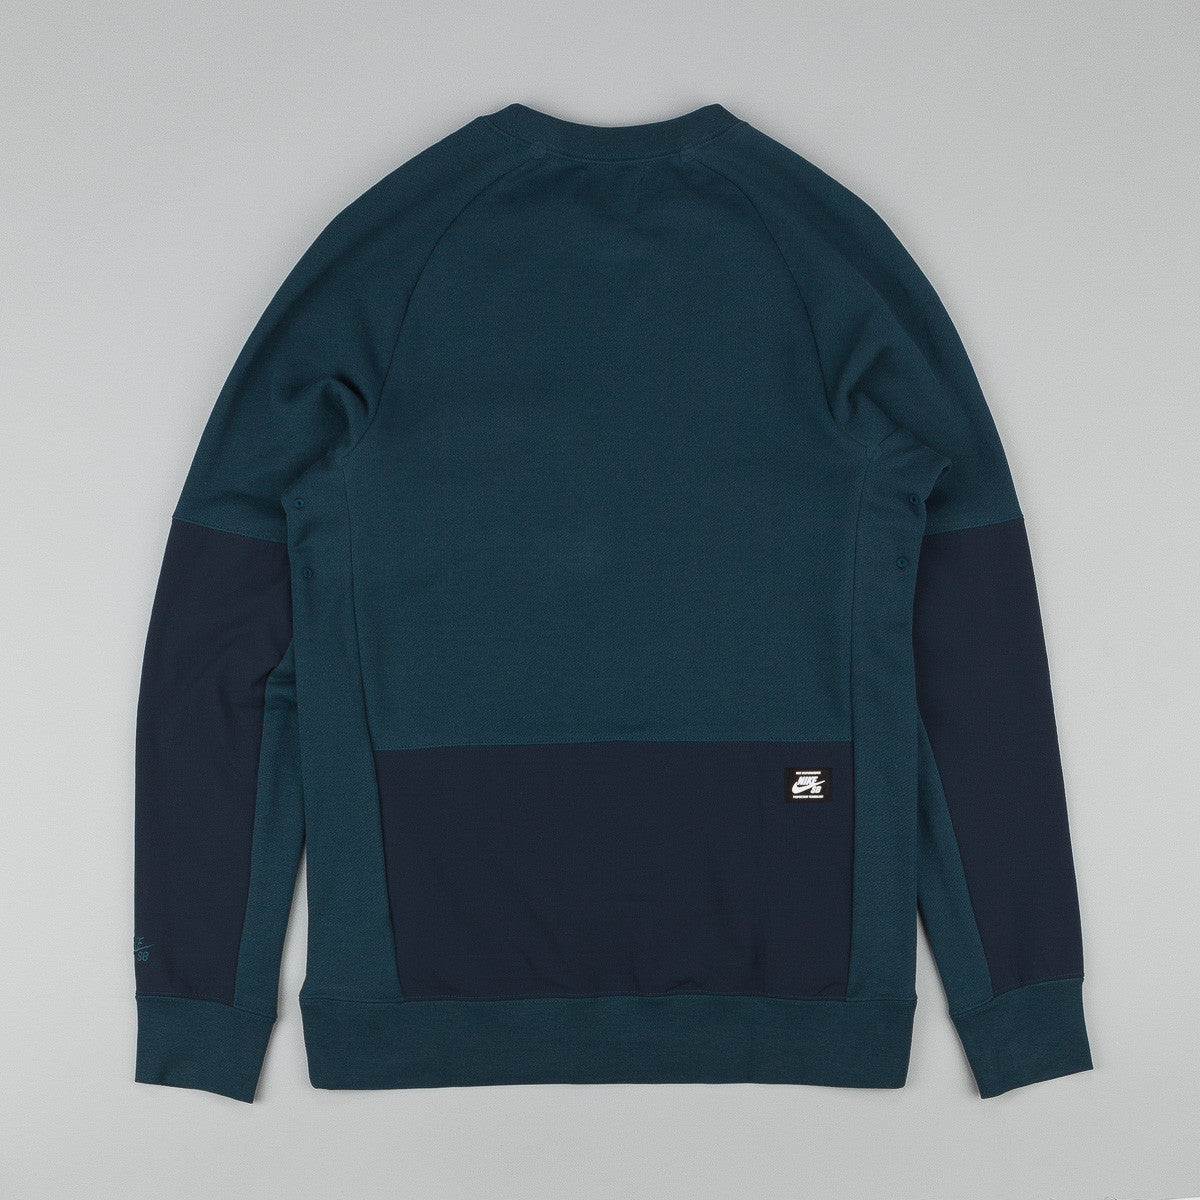 Nike SB Everett Overlay Pocket Crew Neck Sweatshirt - Midnight Teal / Dark Obsidian